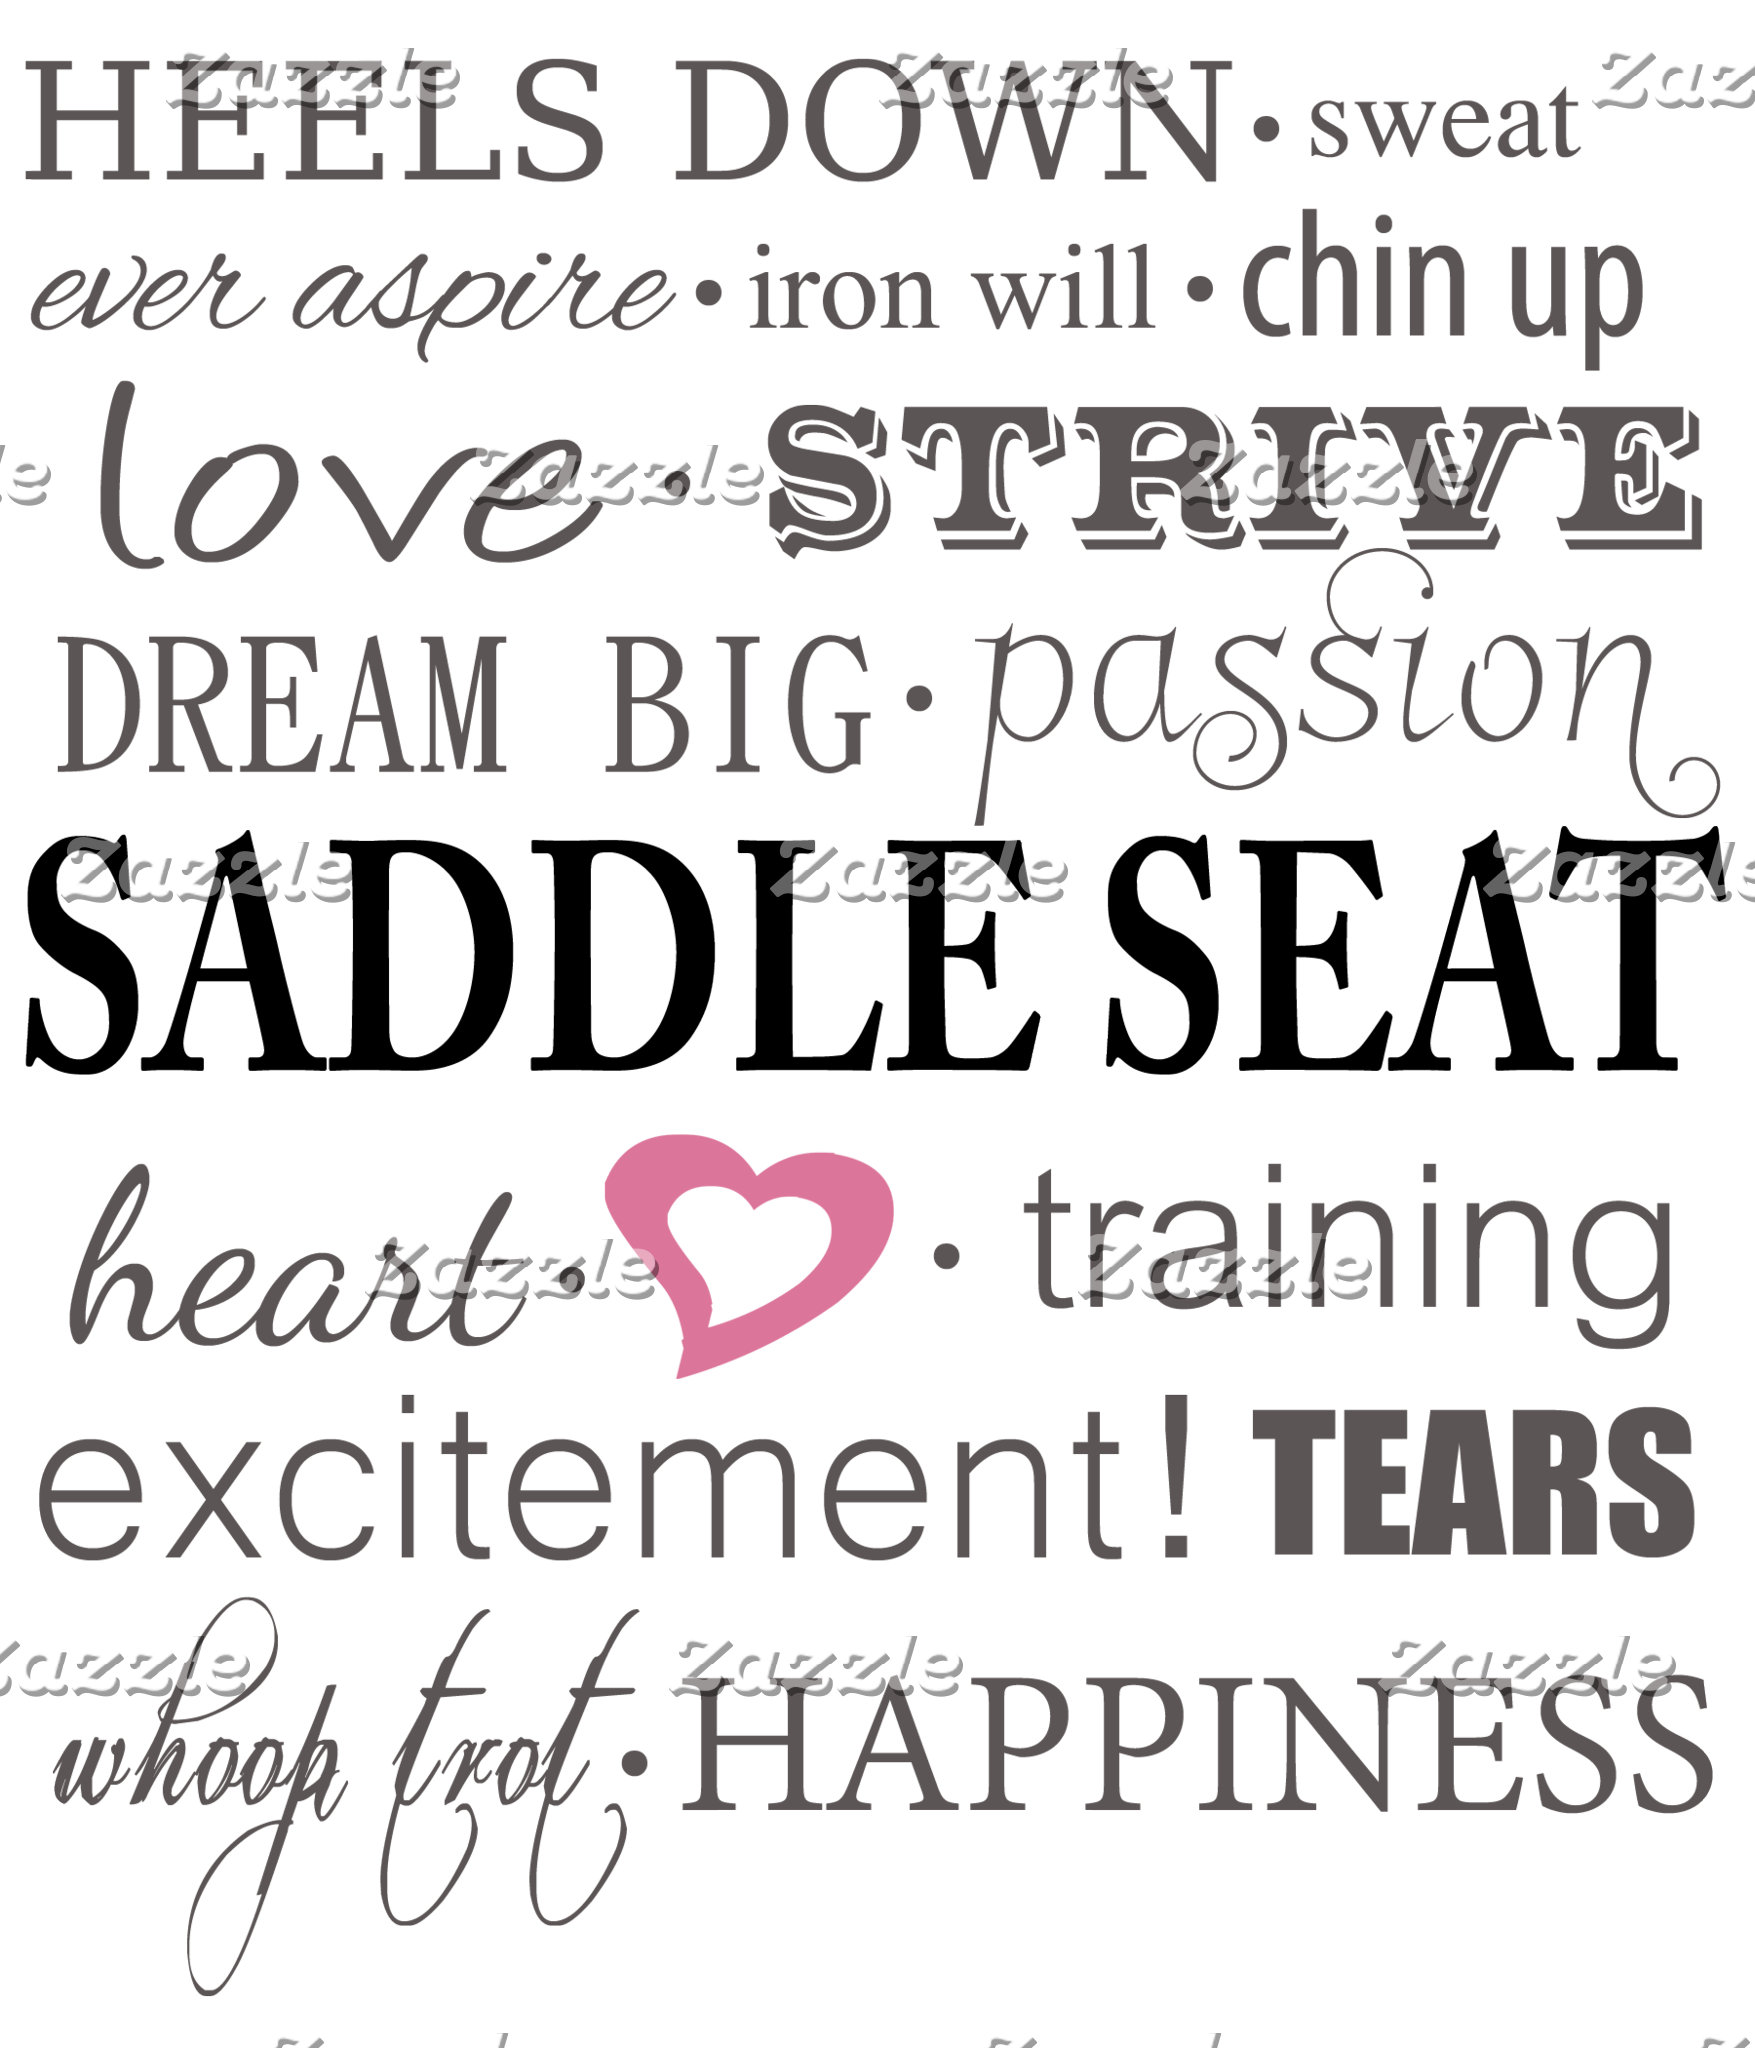 Aspects of Saddle Seat